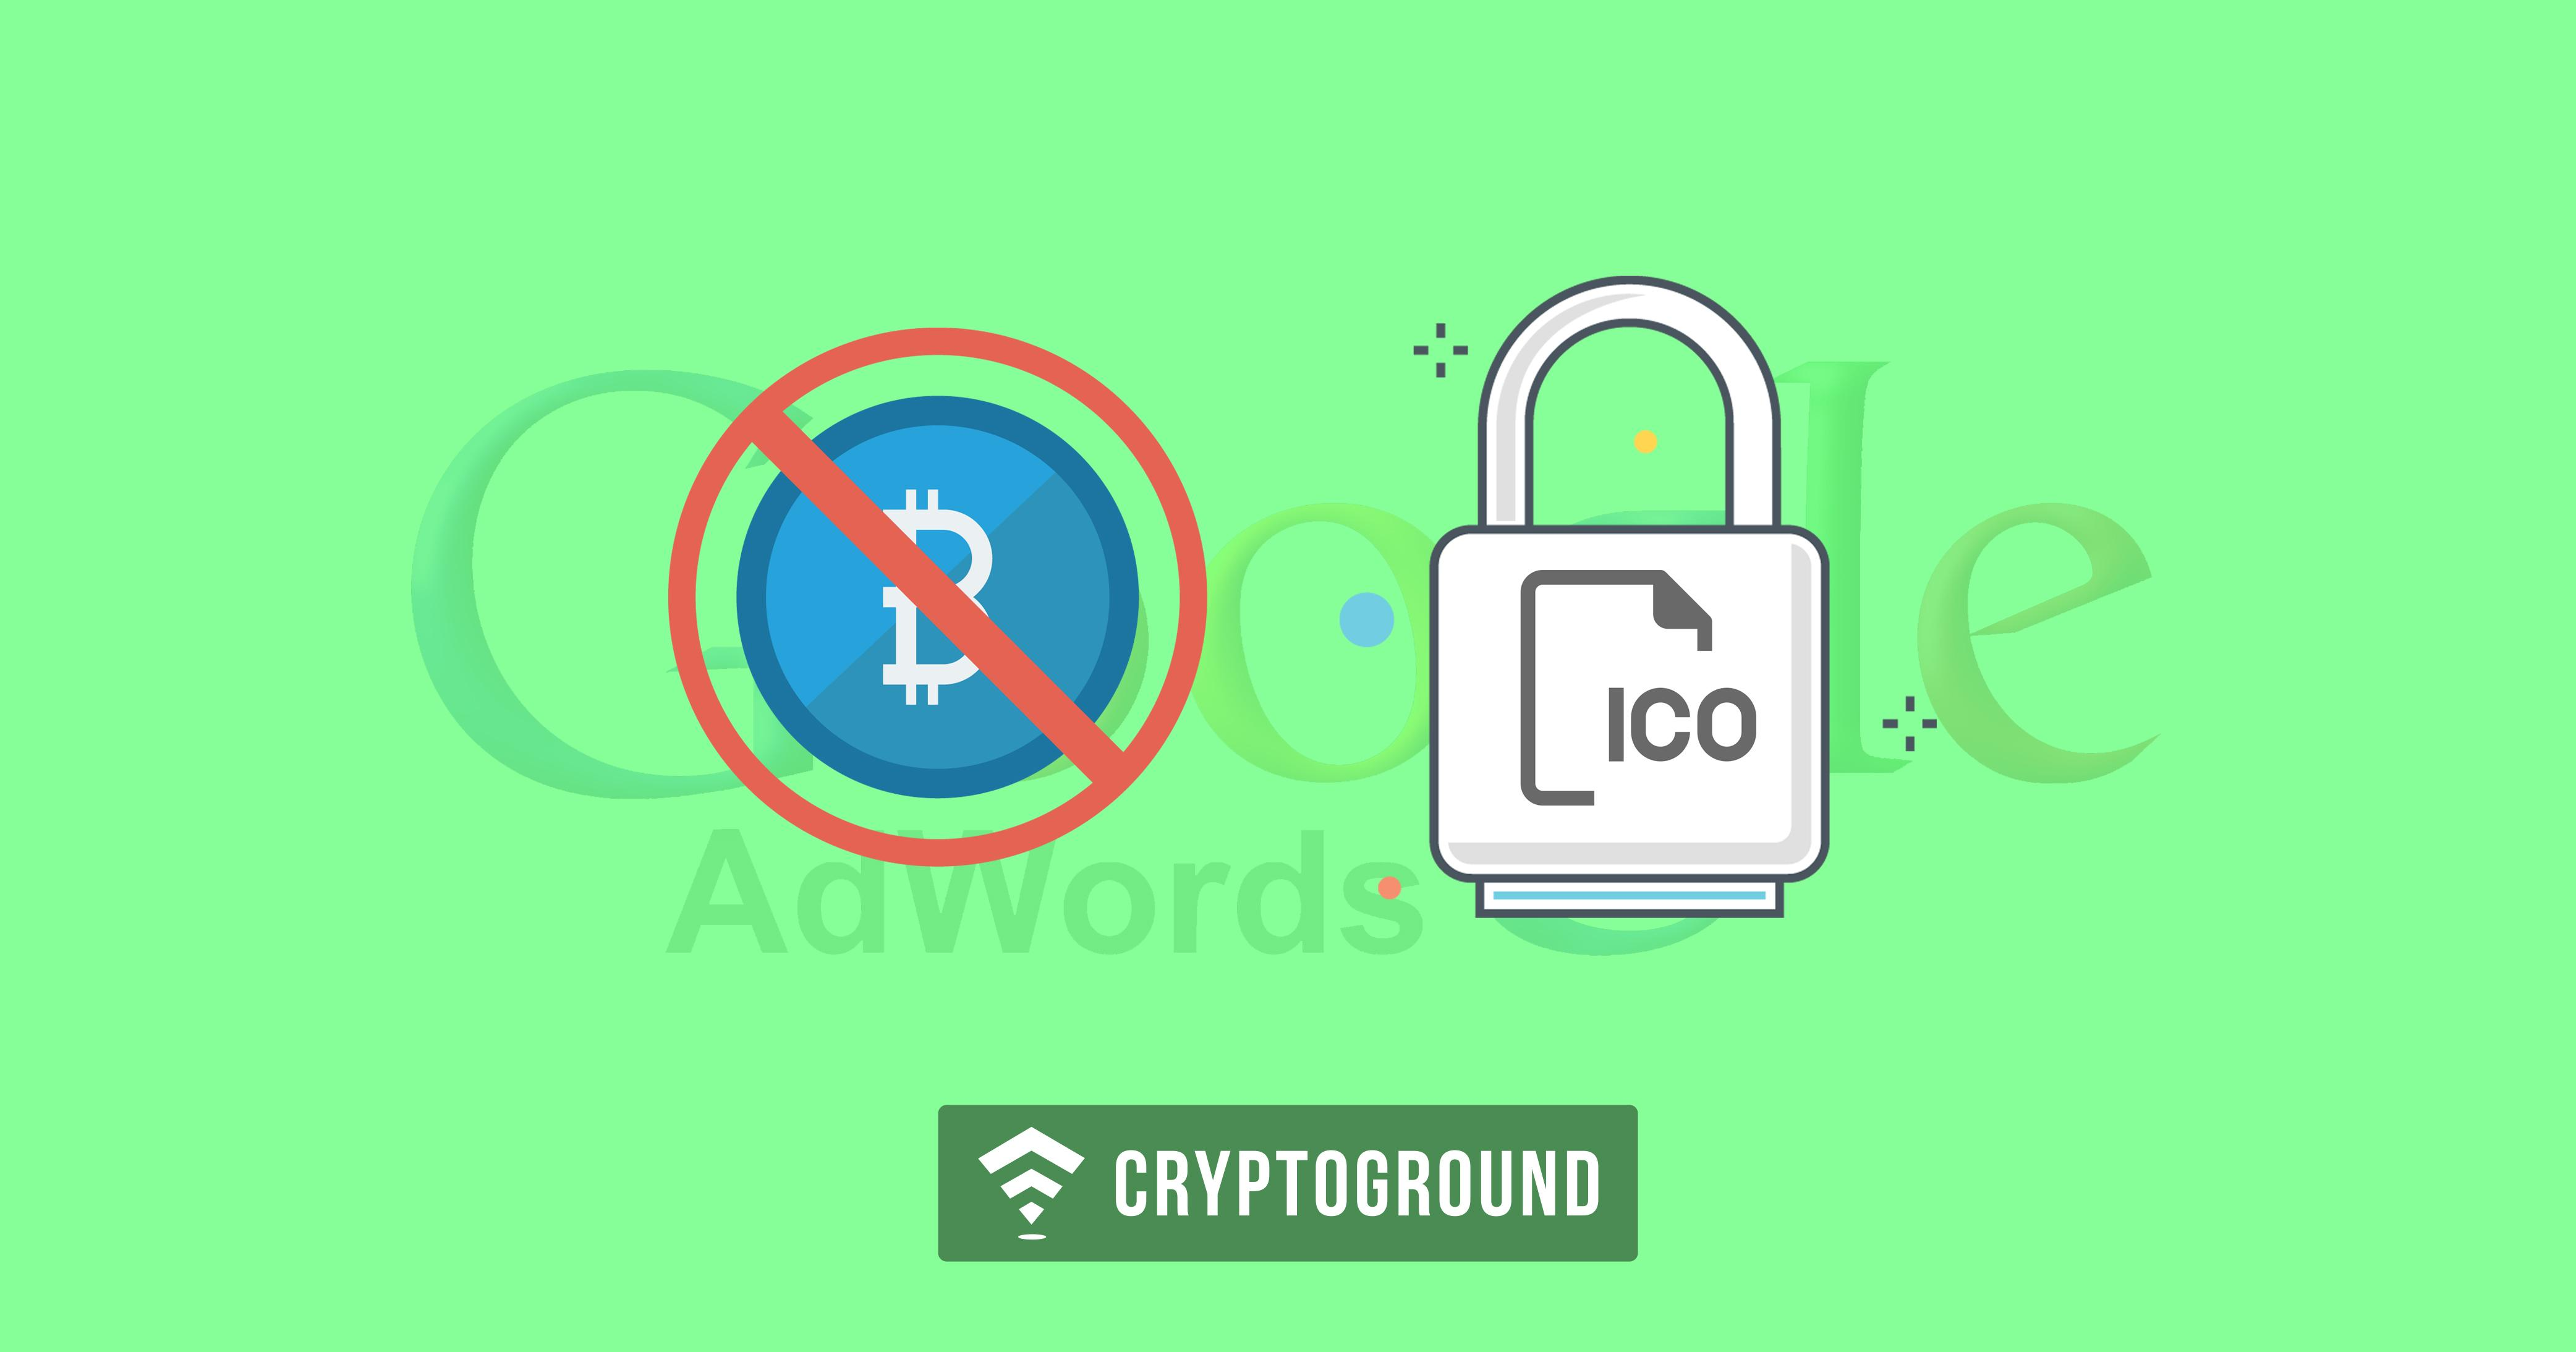 Google To Ban Bitcoin And Cryptocurrency-Related Ads